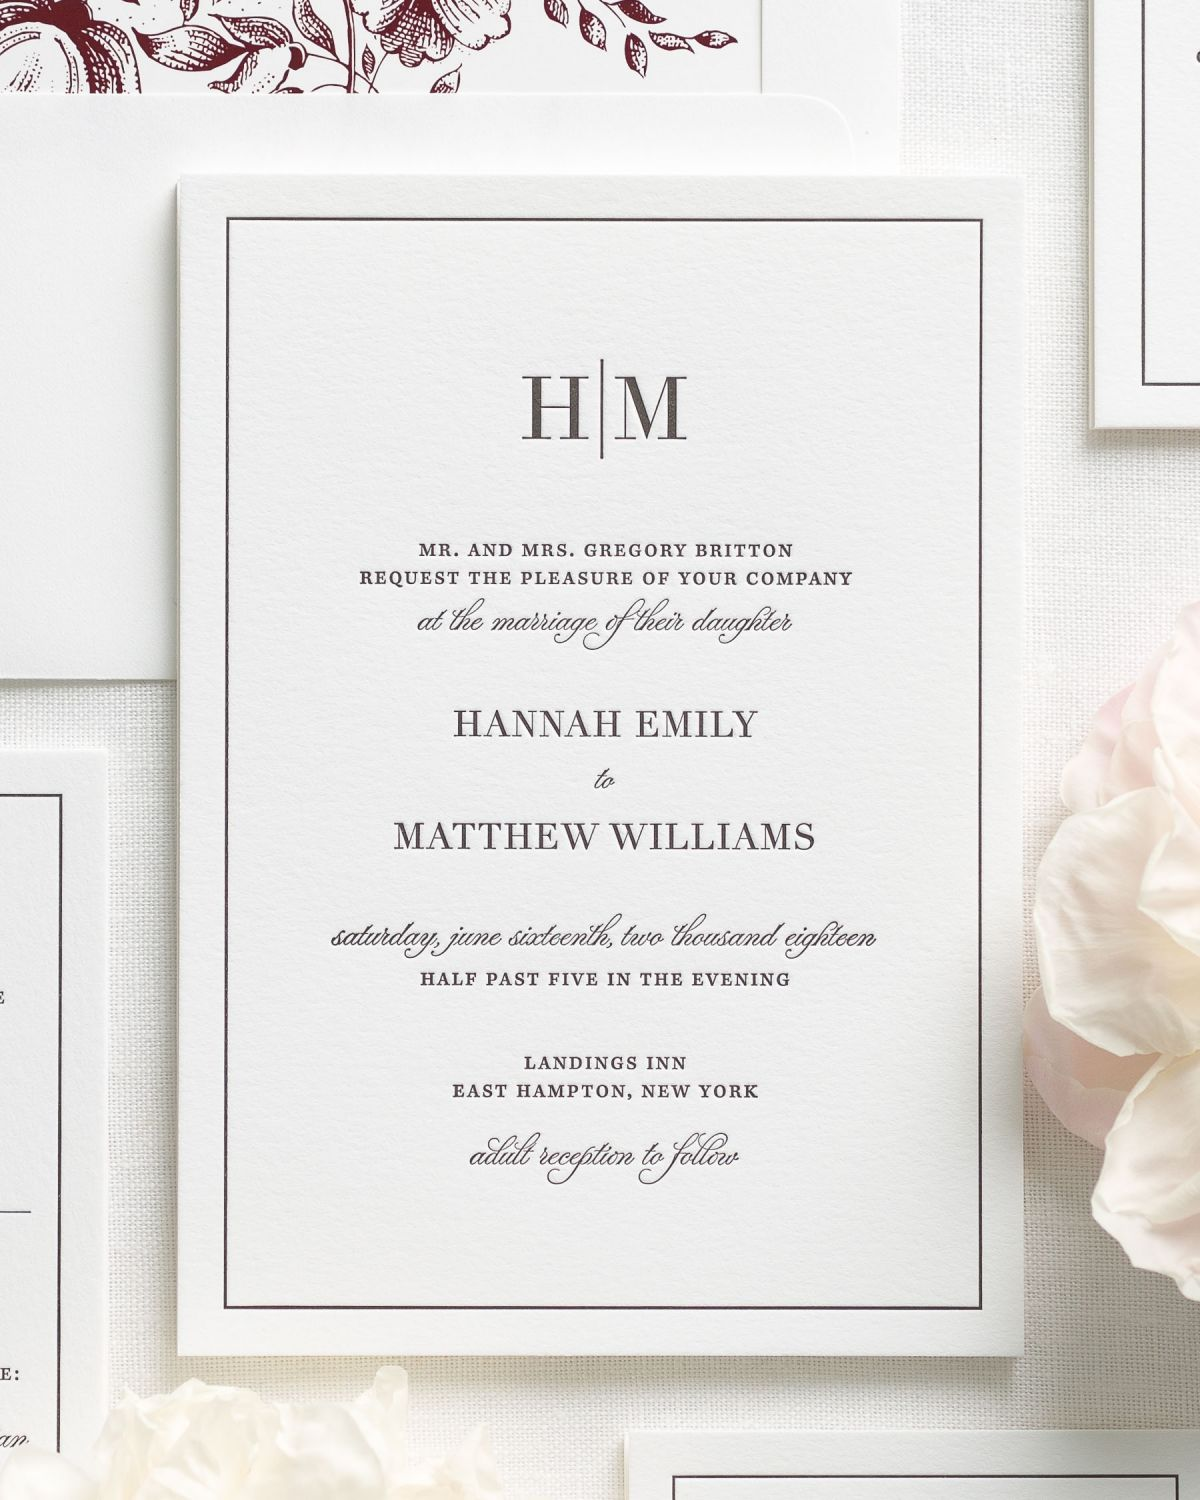 Letterpress Wedding Invitations with Border and Initials Monogram